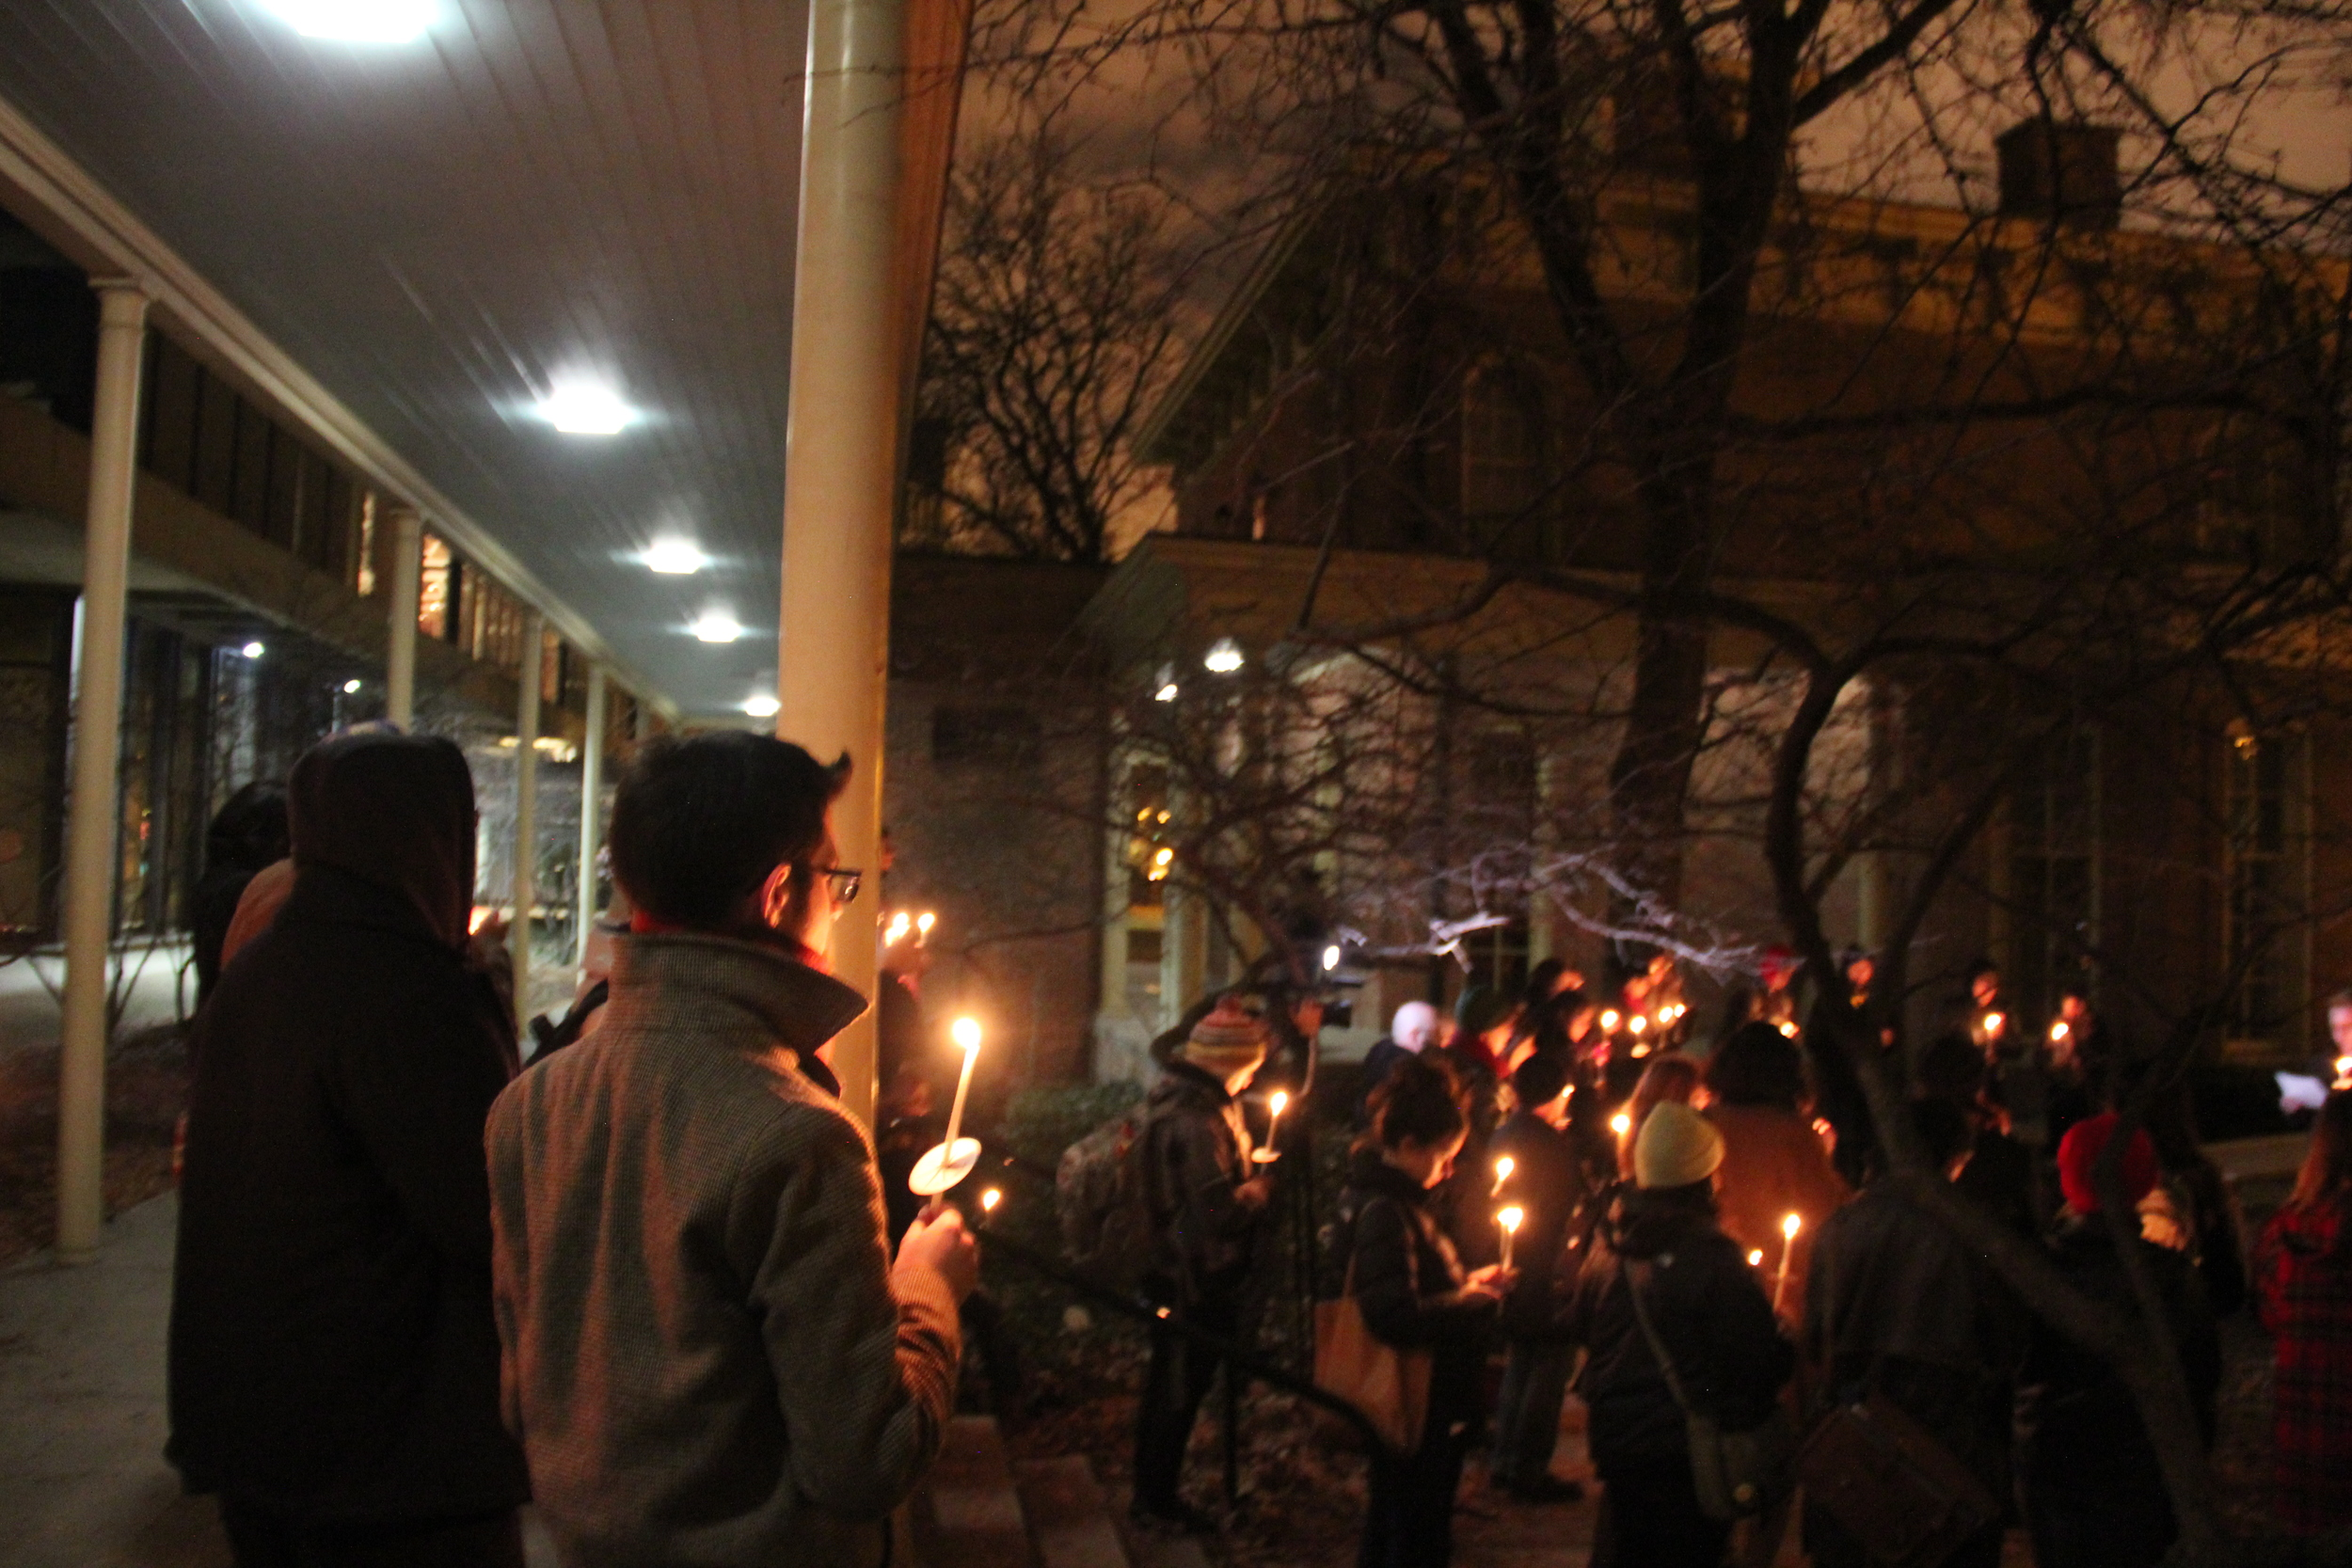 Thomas Alaan, one of our board members, was among the CALA representatives at SWOP's march and vigil.